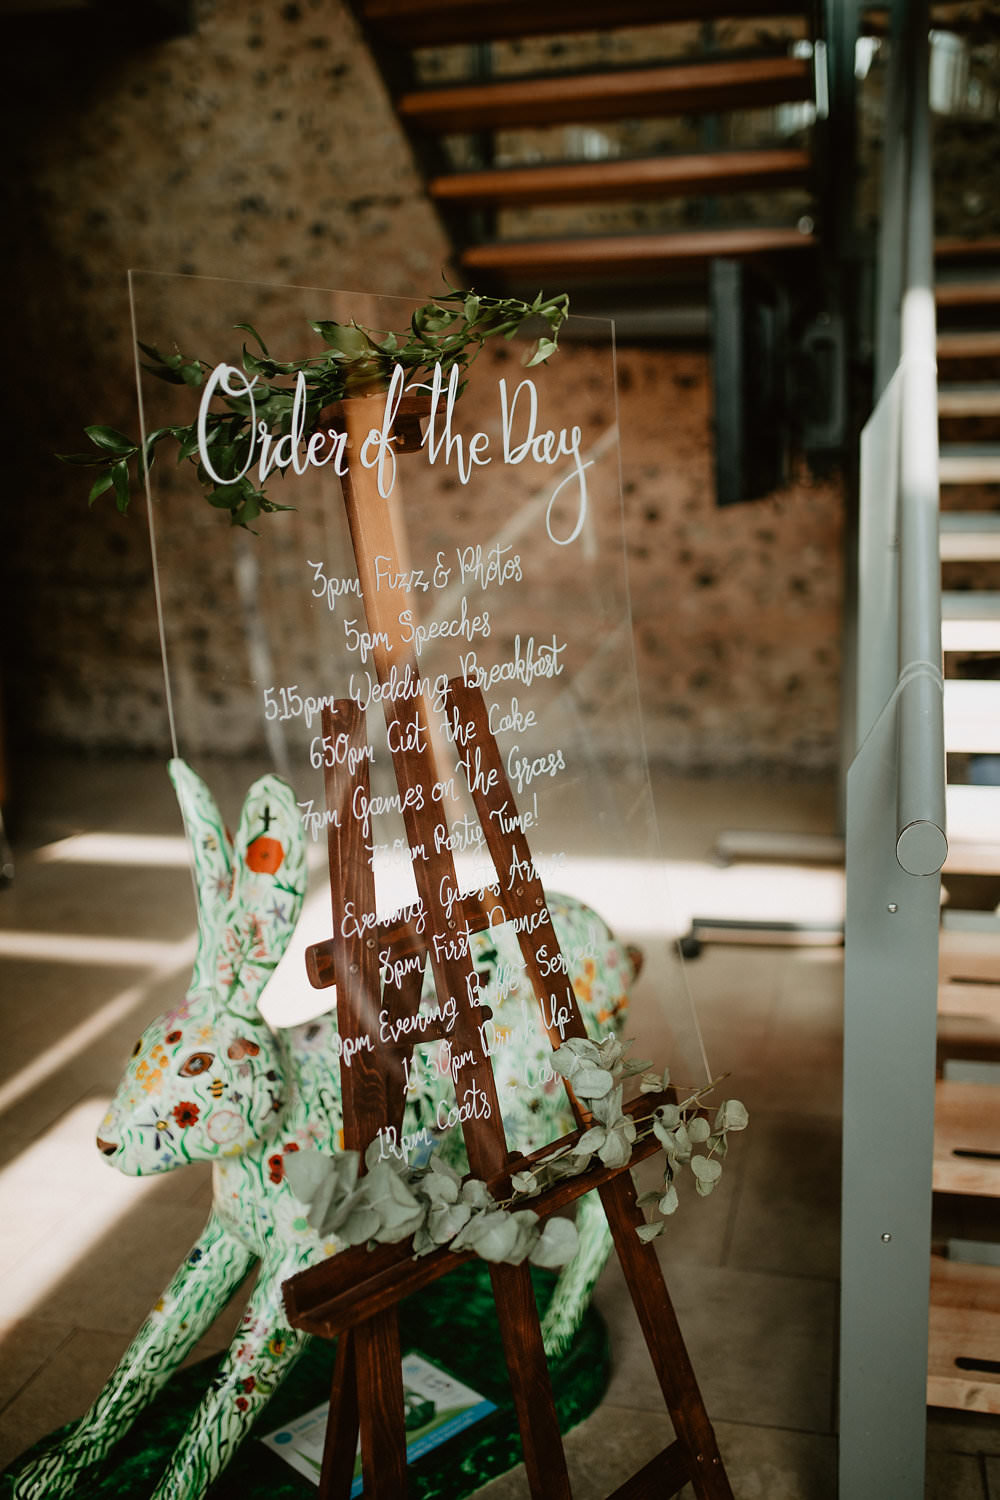 Glass Perspex Acrylic Sign Signage Stationery Calligraphy Greenery Easel Order of Day Timings Norwich Cathedral Wedding Camilla Andrea Photography